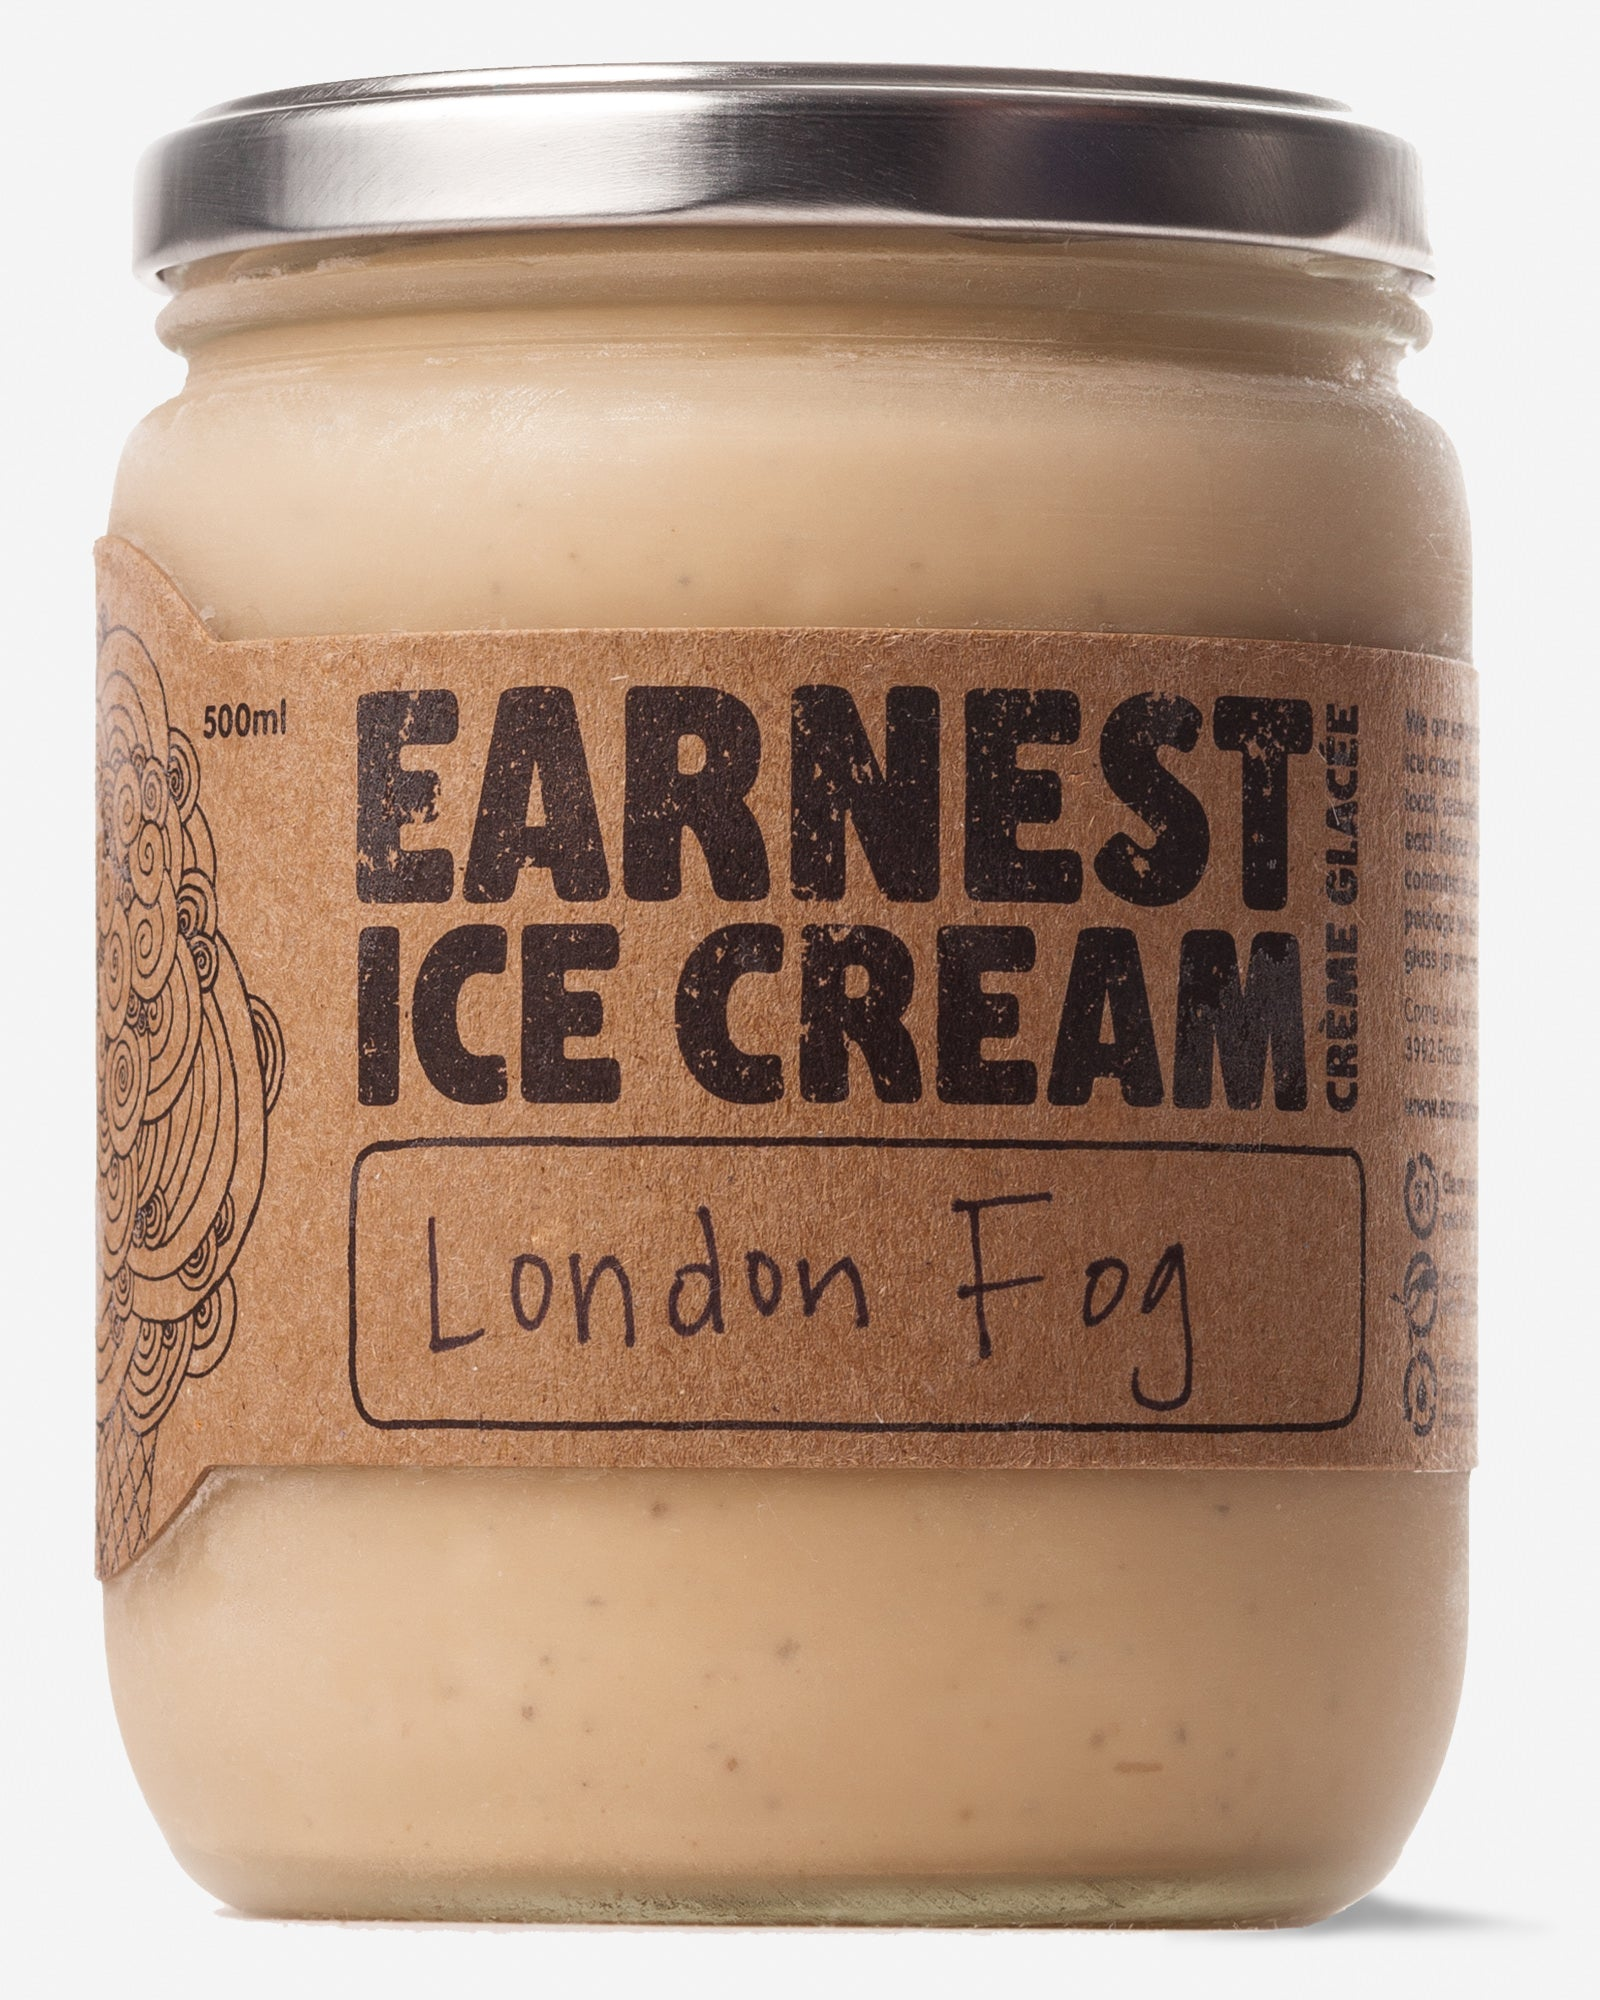 London Fog Ice Cream